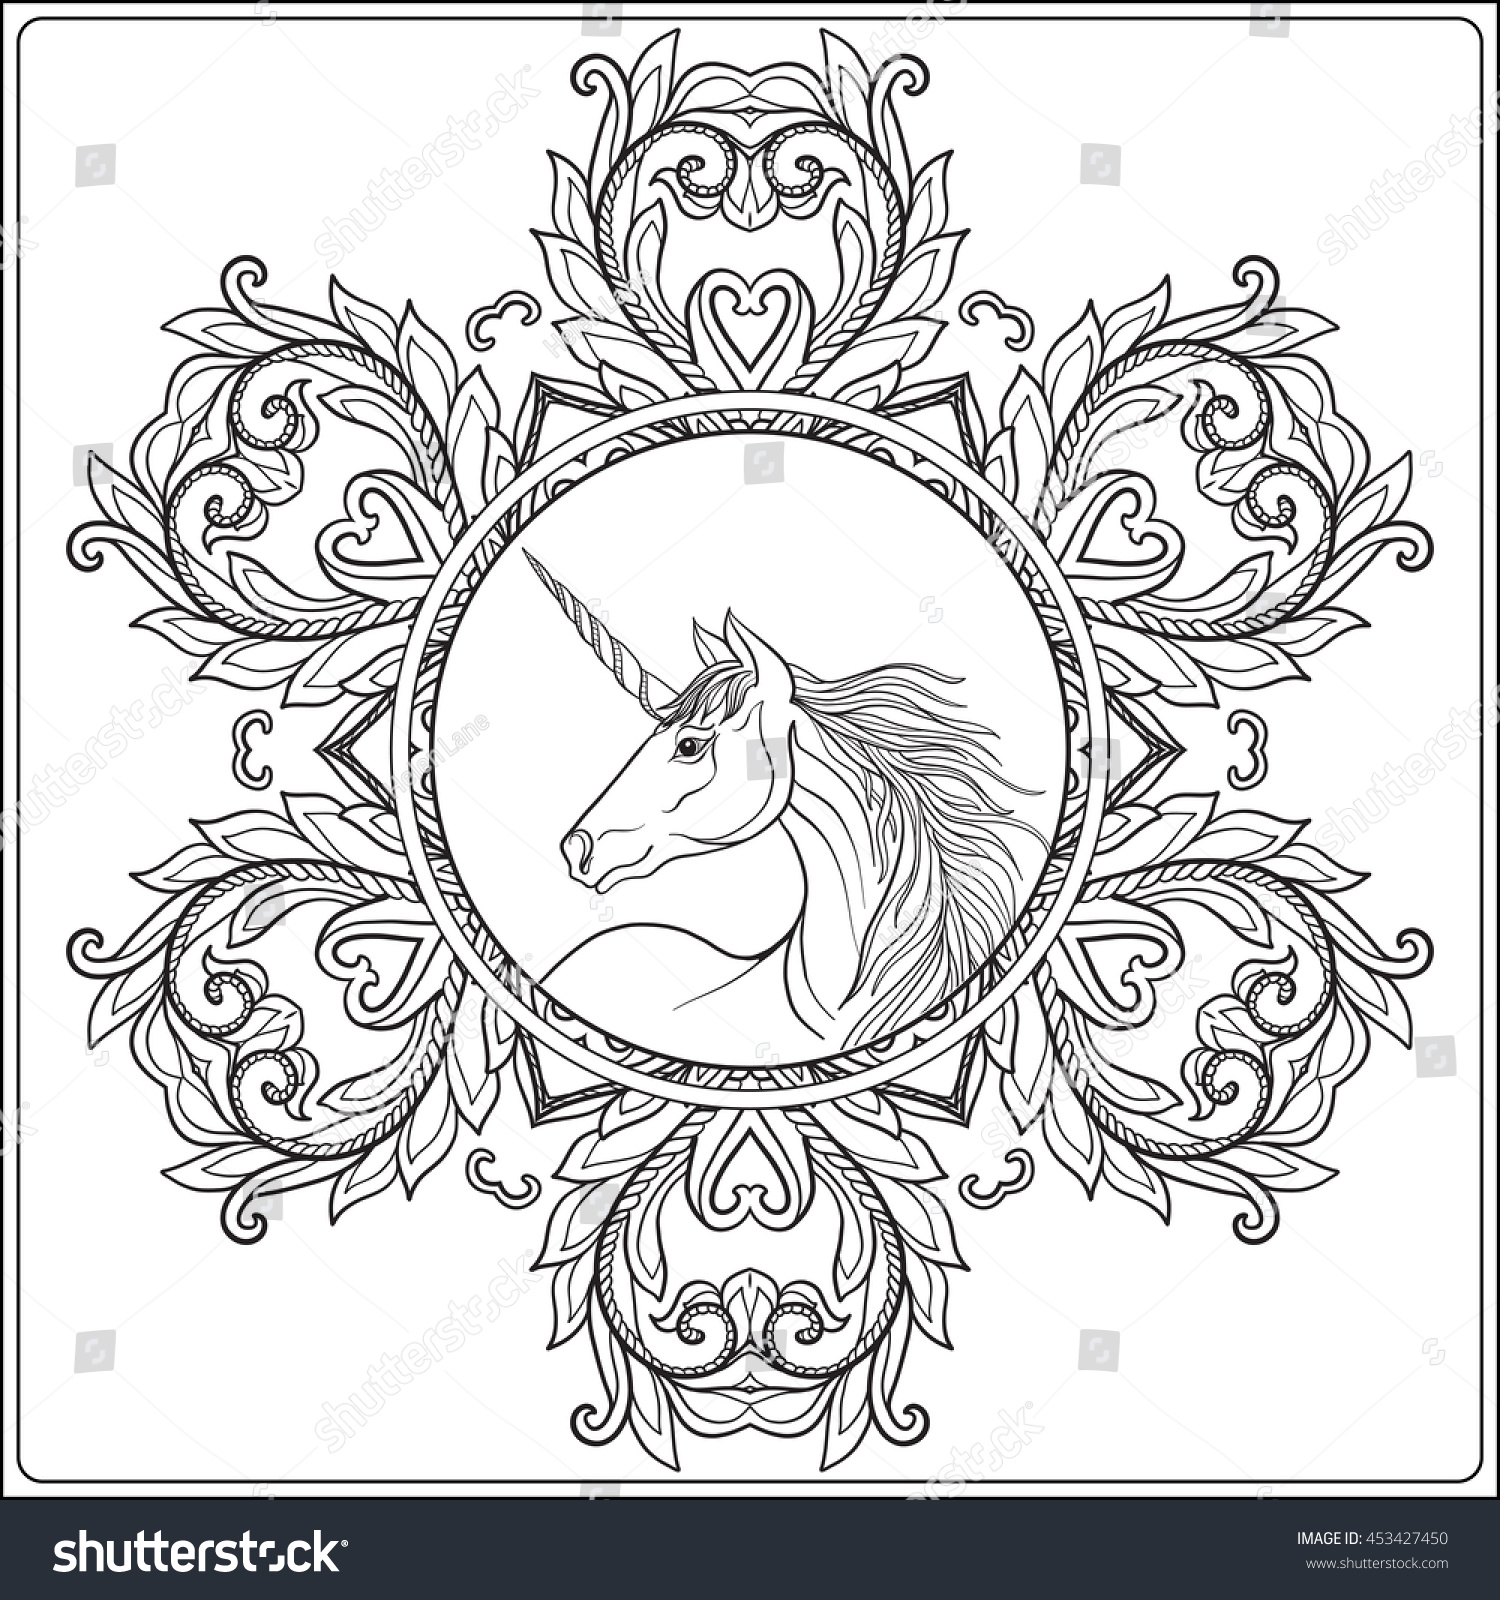 Coloring Pages For Adults Unicorns - Childrens coloring pages unicorn unicorn in vintage decorative floral mandala frame vector illustration coloring book